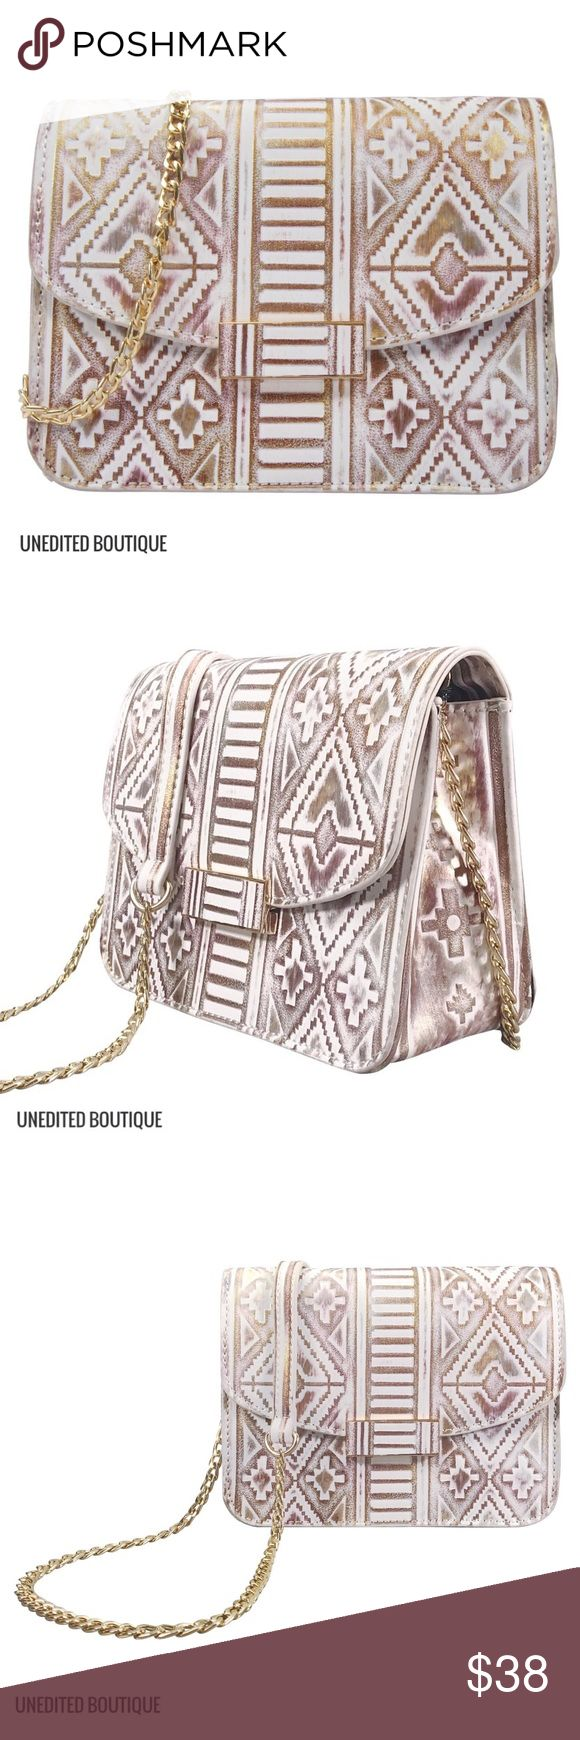 Indie Painted Crossbody This stunning geometric shape painted indie Crossbody is hand designed in Los Angeles California using premium vegan leather and is finished off with a fully lined interior and gold chain with leather Shoulder piece. OFFERS NOT ACCEPTED  LOWEST PRICES LISTED MMS Design Studio Bags Crossbody Bags